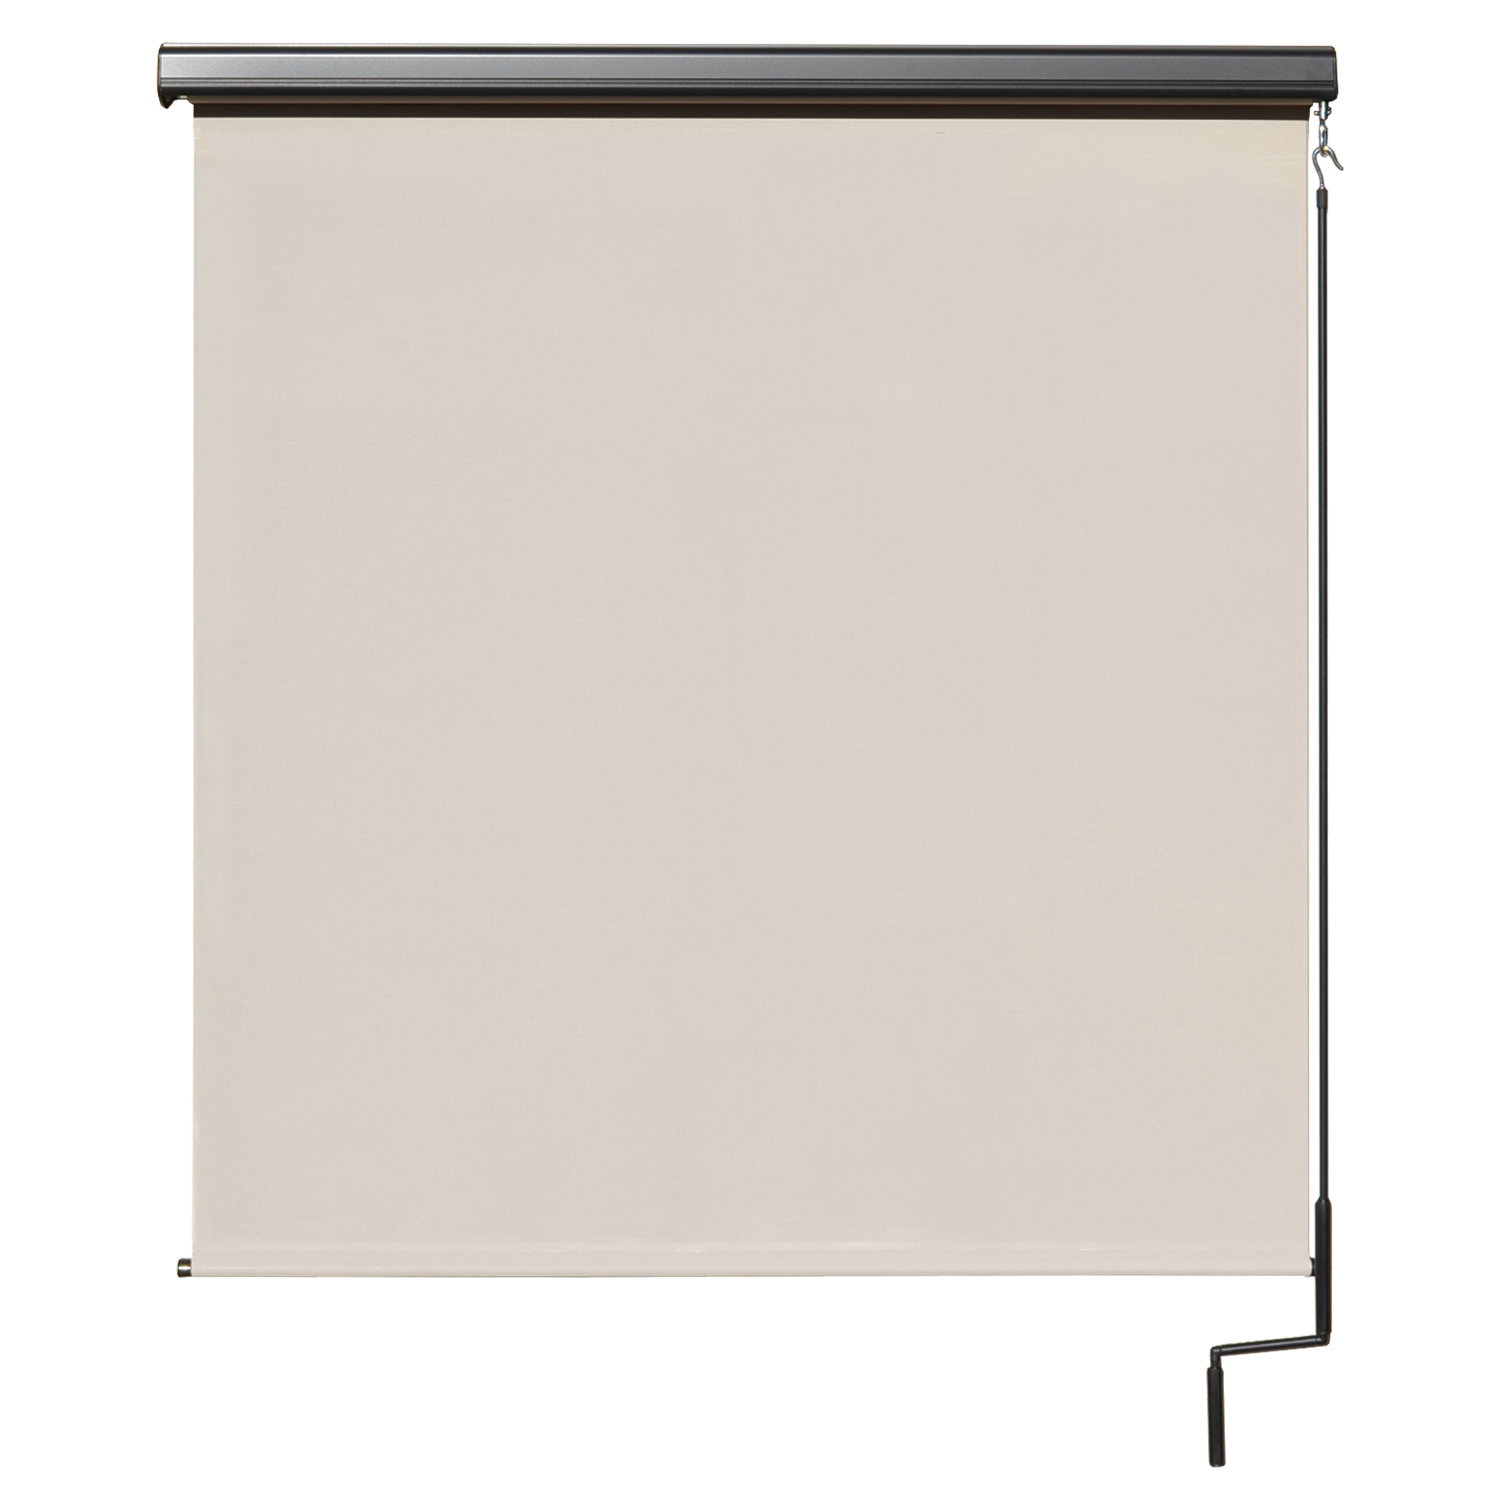 Premier Cordless Outdoor Sun Shade with Protective Valance, 10' W x 8' L, Palm